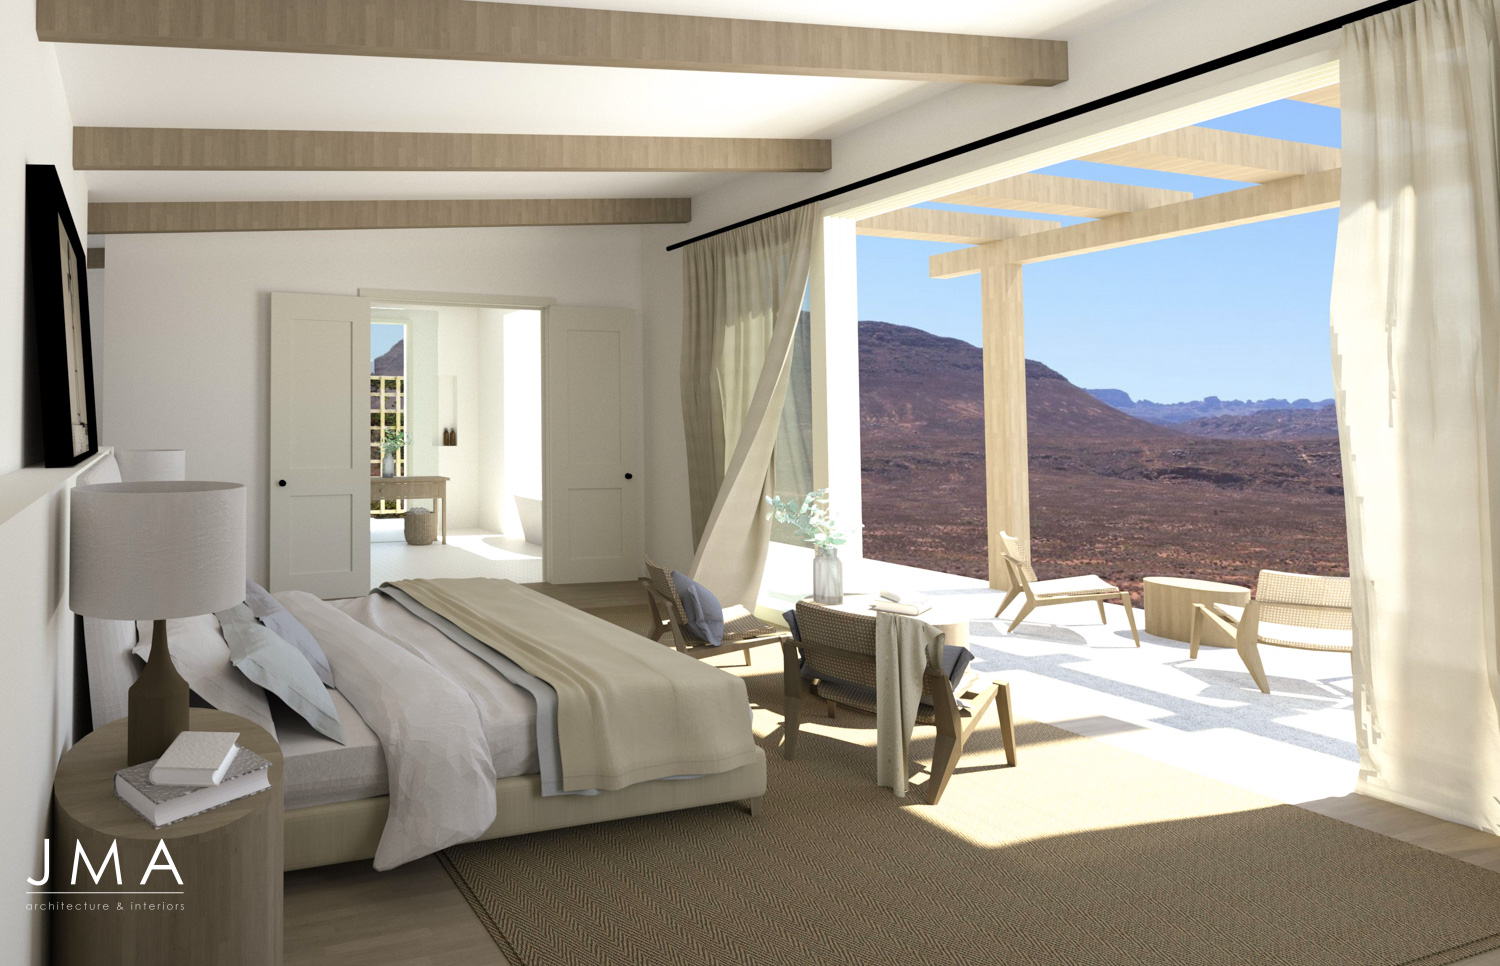 Cederberg Ridge Lodge Bedroom design and render by Jenny Mills Architects